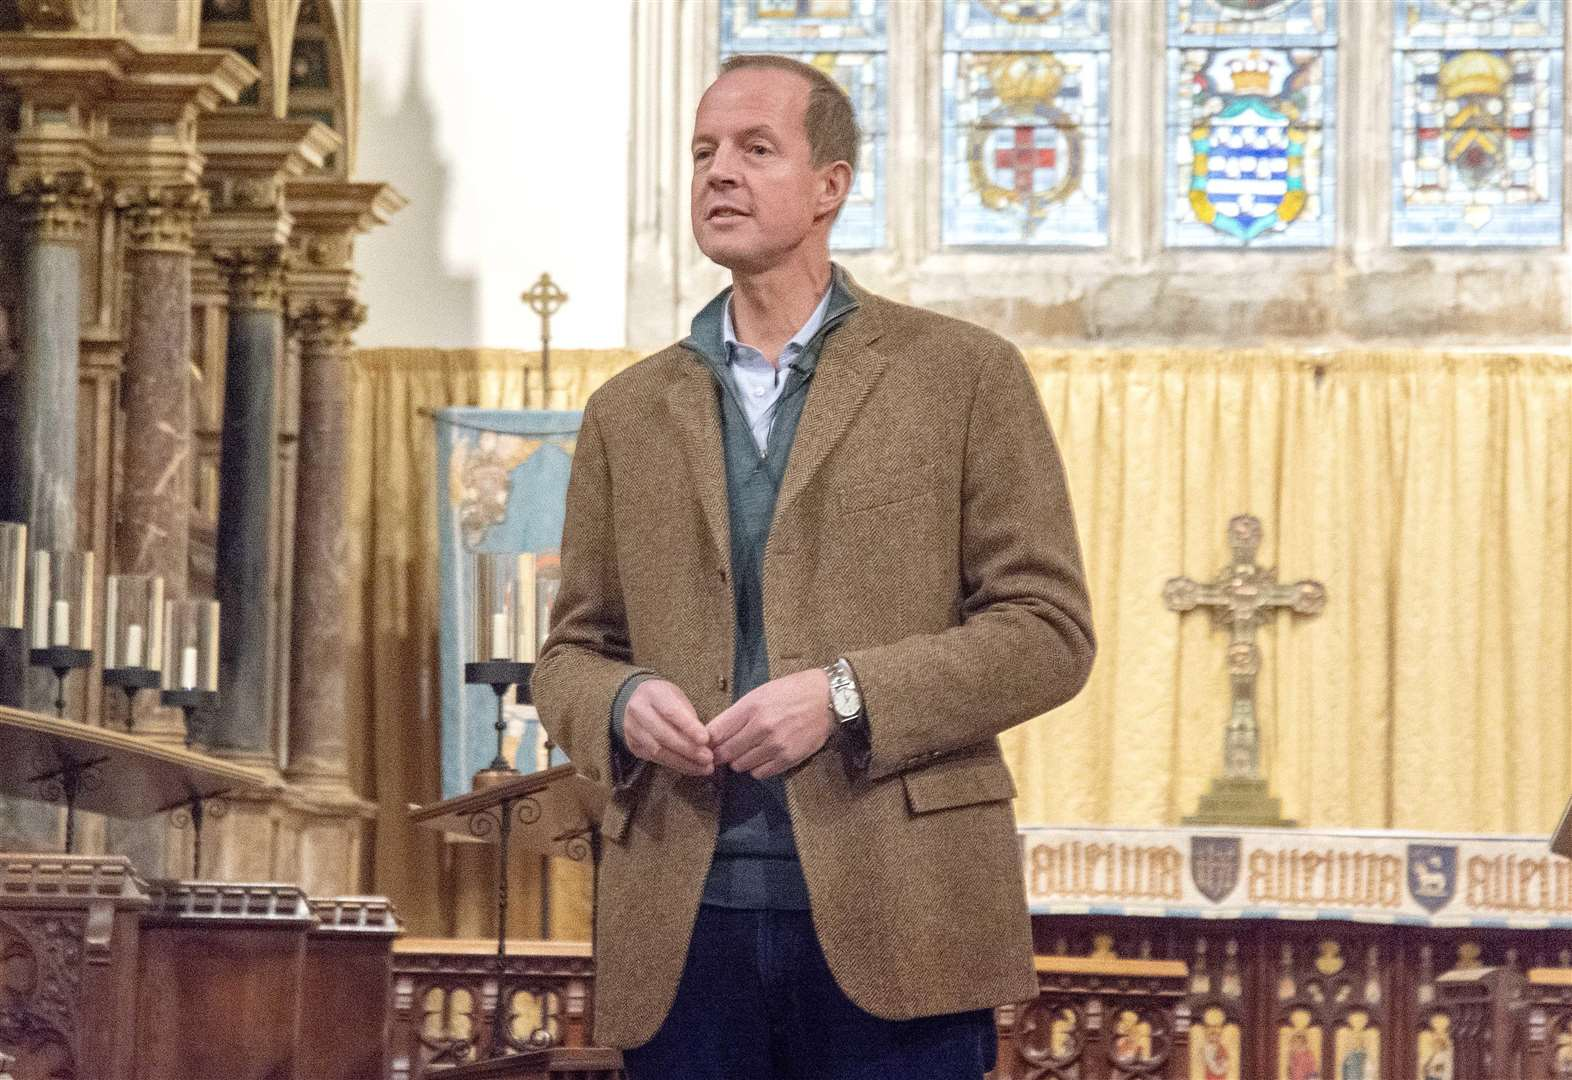 Grantham MP Nick Boles under fire for trying to 'frustrate' re-adoption process